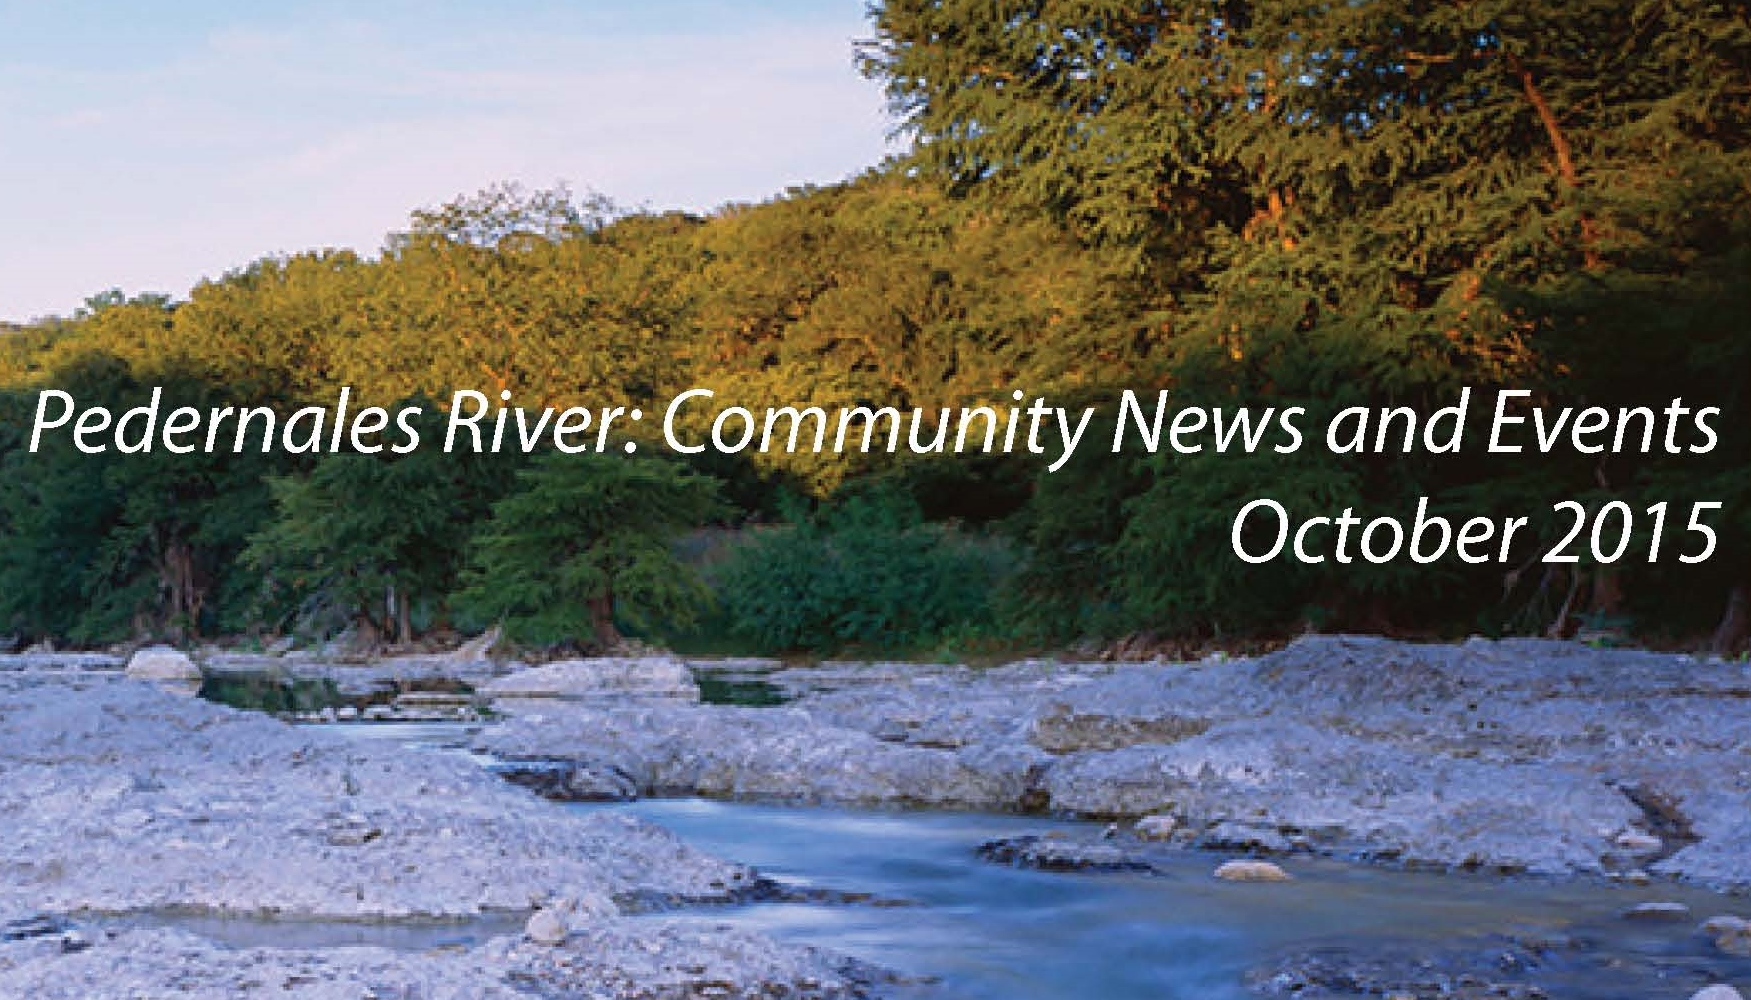 October Pedernales Newsletter Available